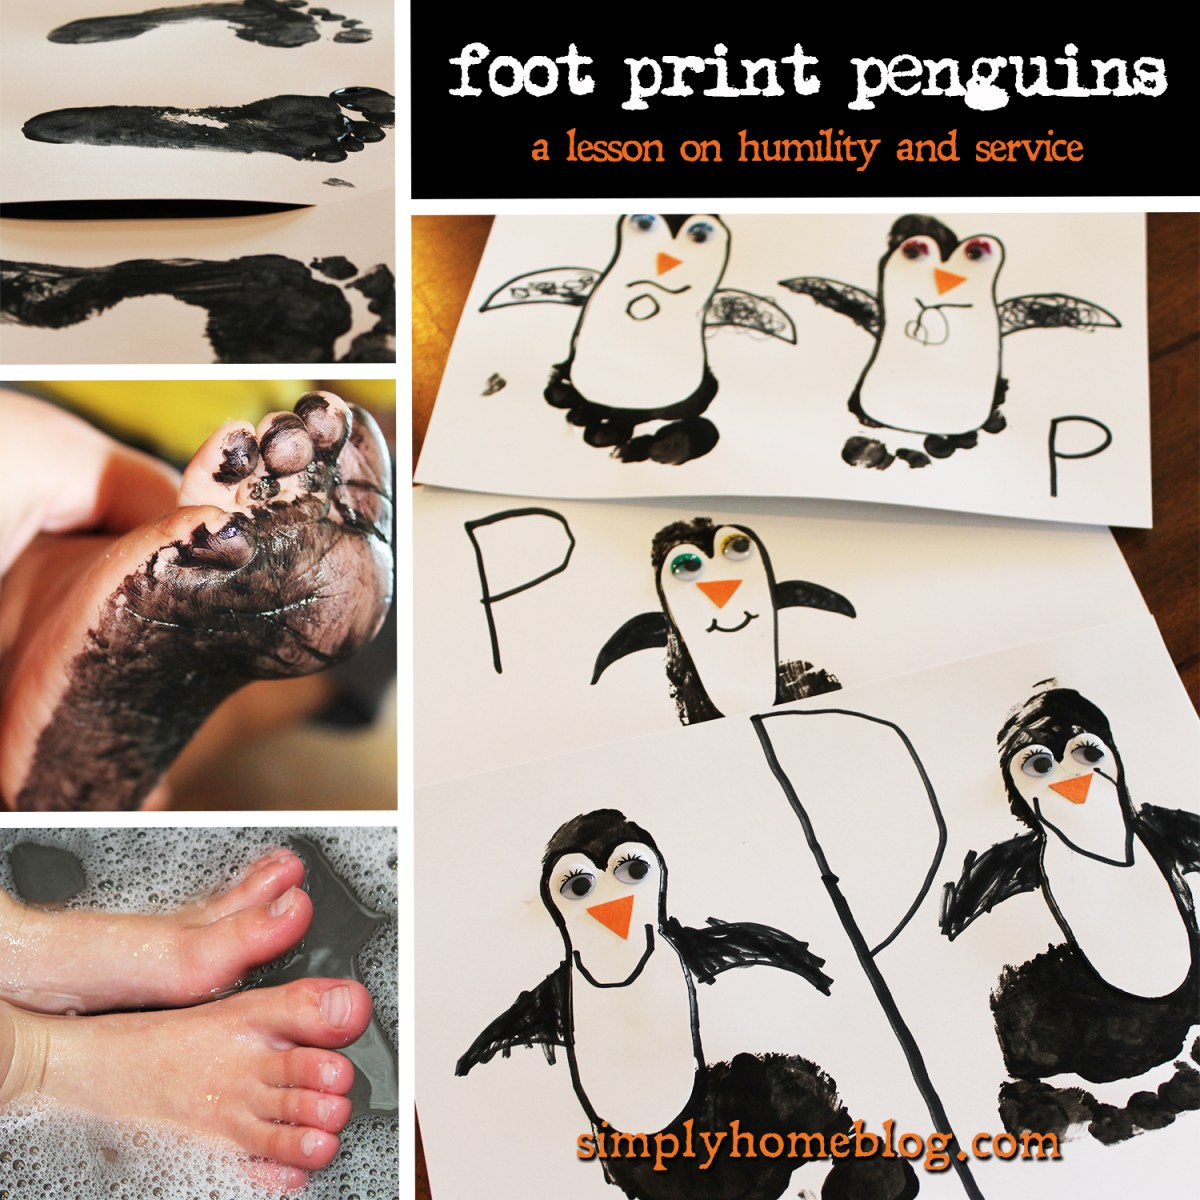 Foot Print Penguins: A Lesson on Humility, Grace, and Service